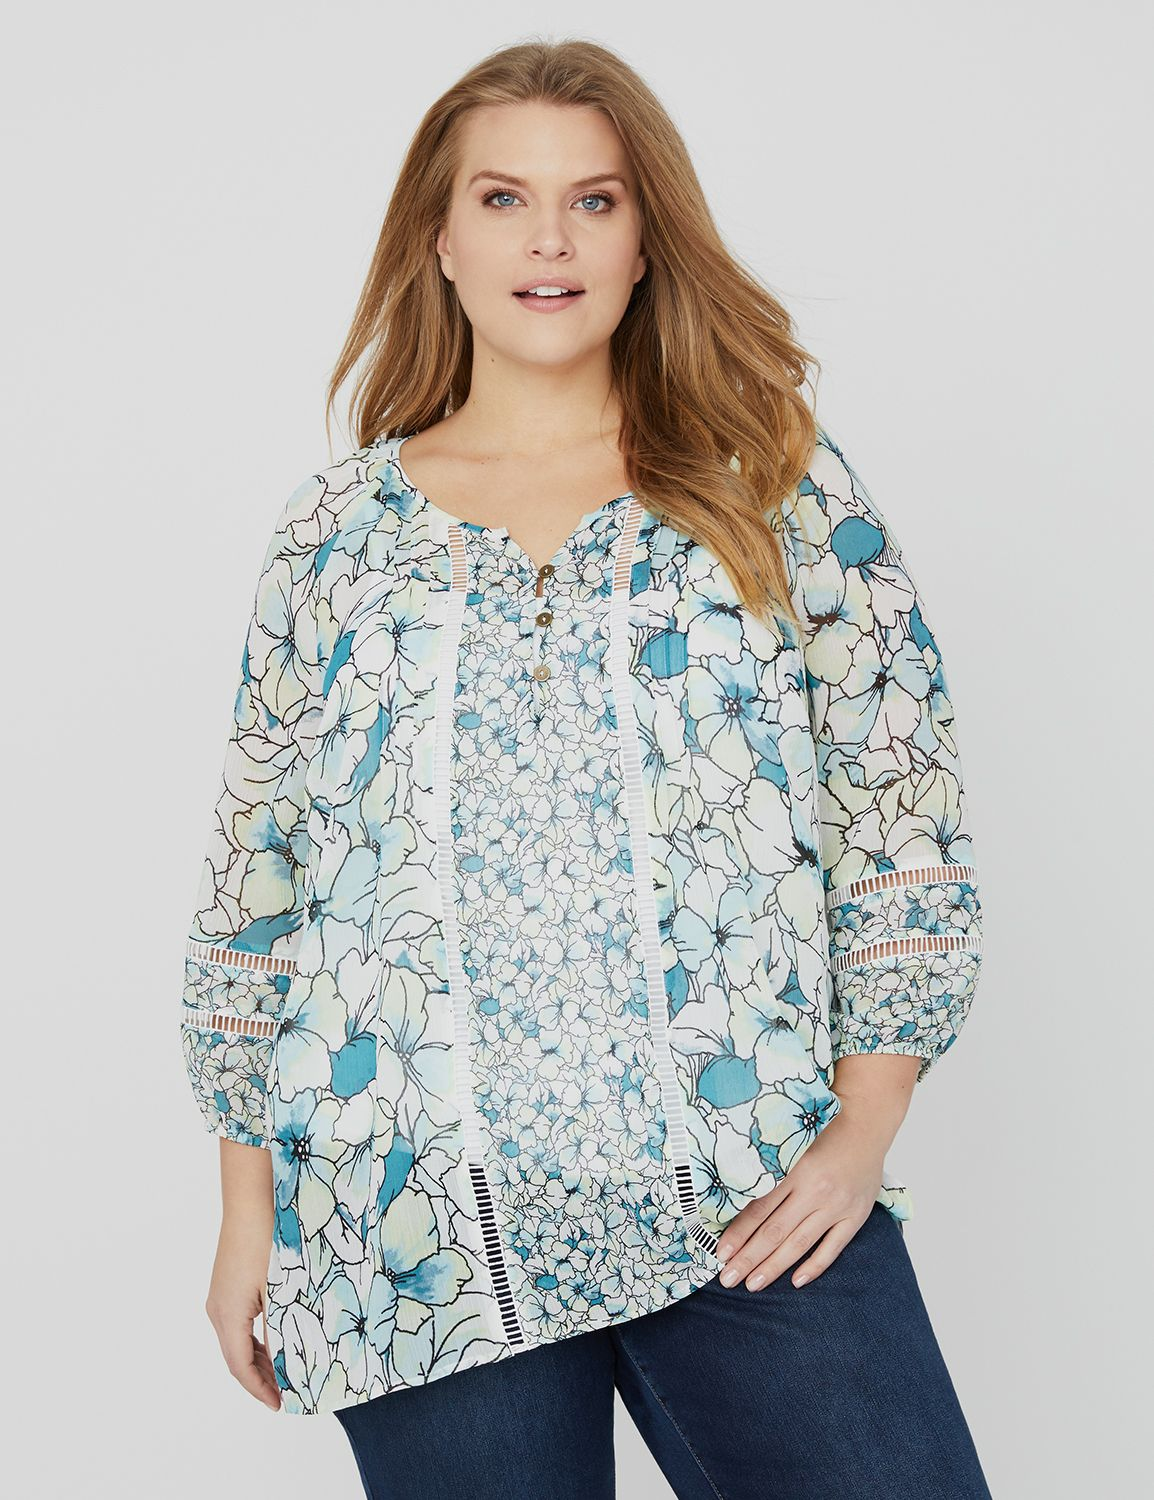 Floral Courtyard Blouse Floral Courtyard Blouse MP-300103609